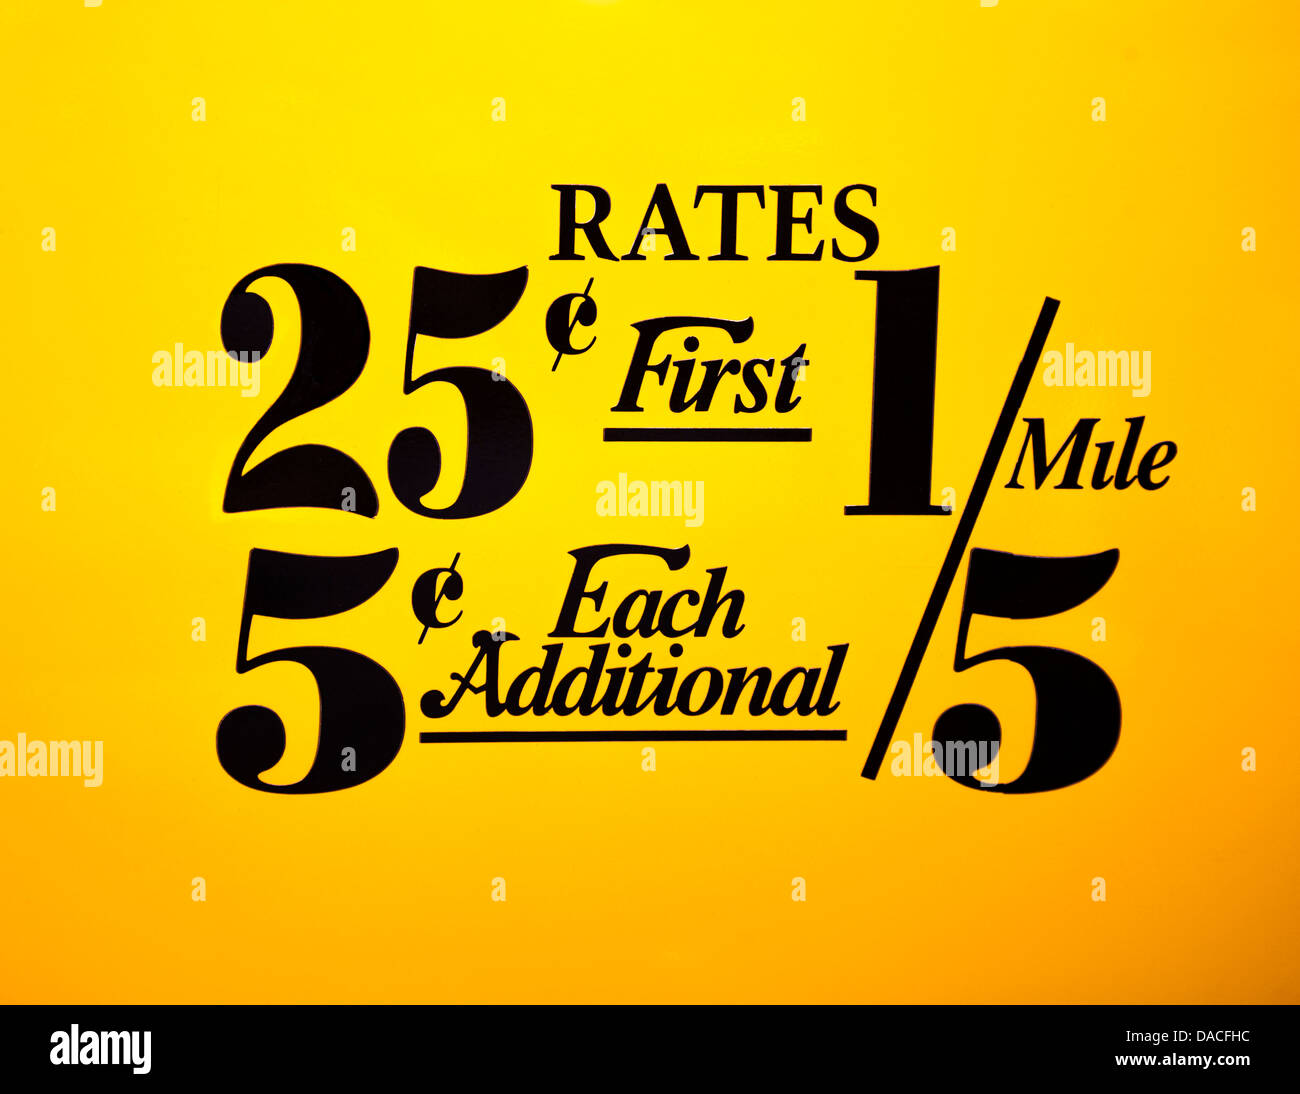 NYC taxi mileage rates displayed on a vintage yellow taxi door, New York City, USA. - Stock Image